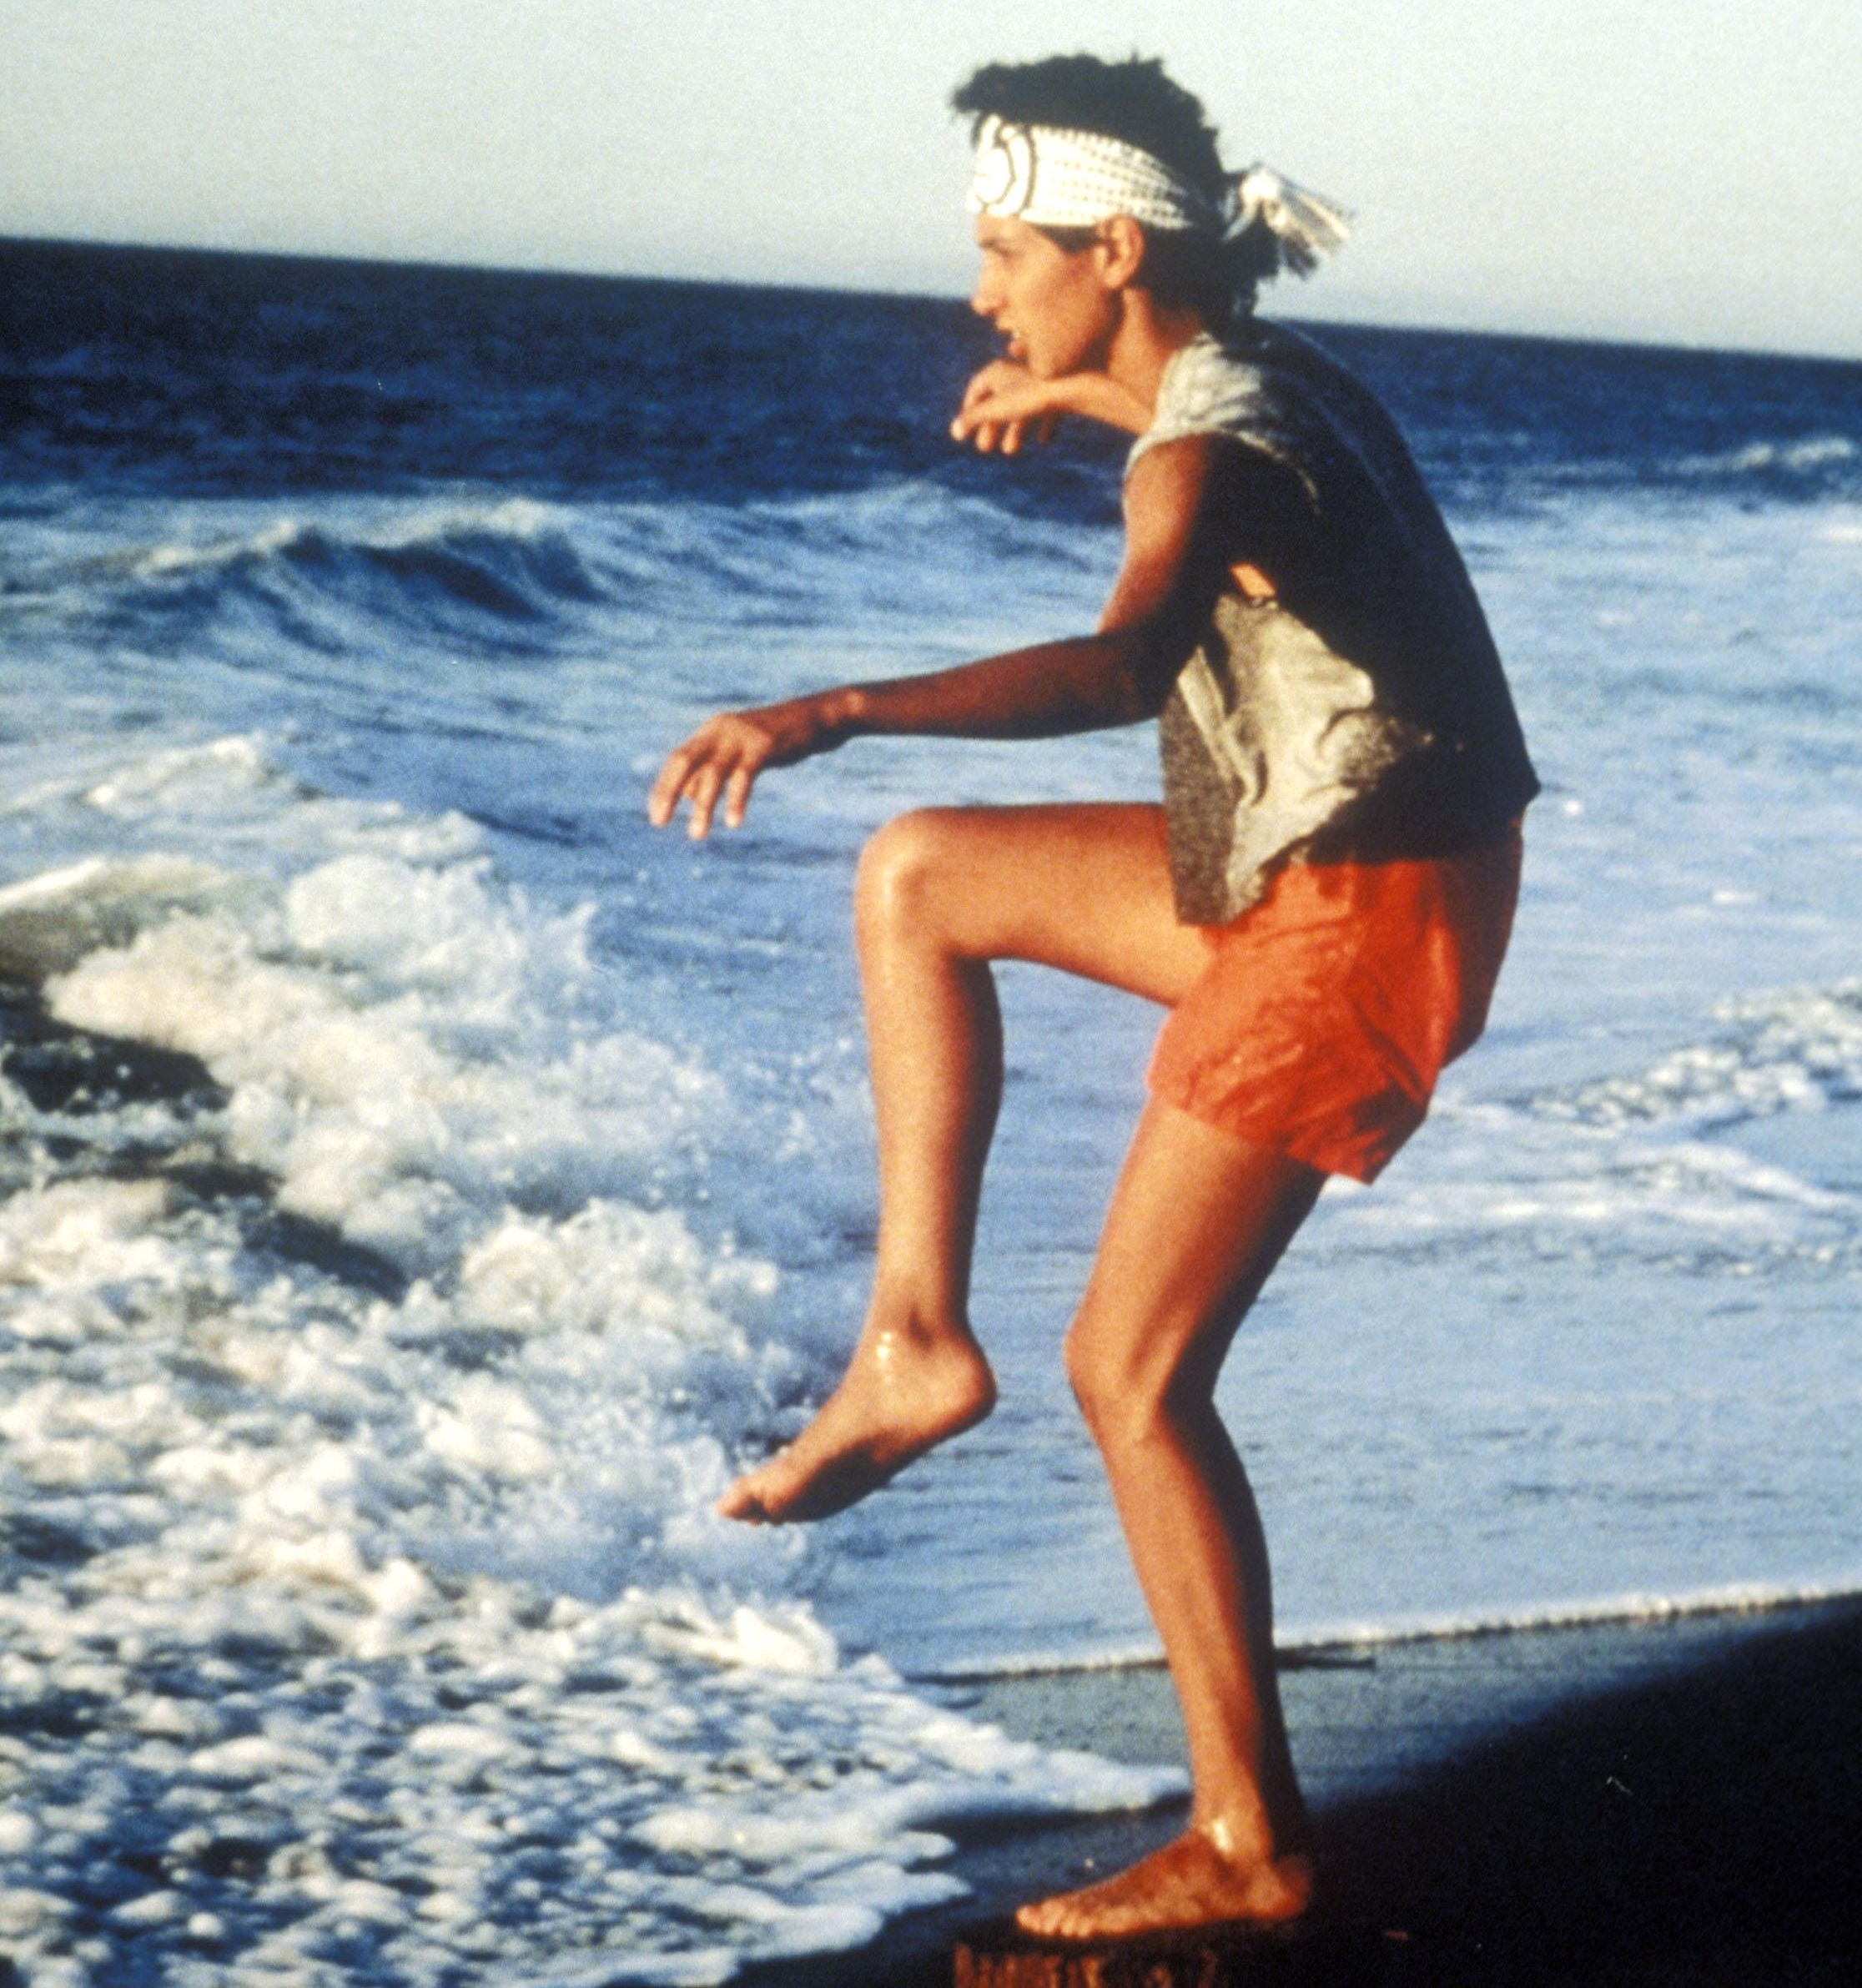 45 1 e1599485268881 20 Secret Facts About The Karate Kid